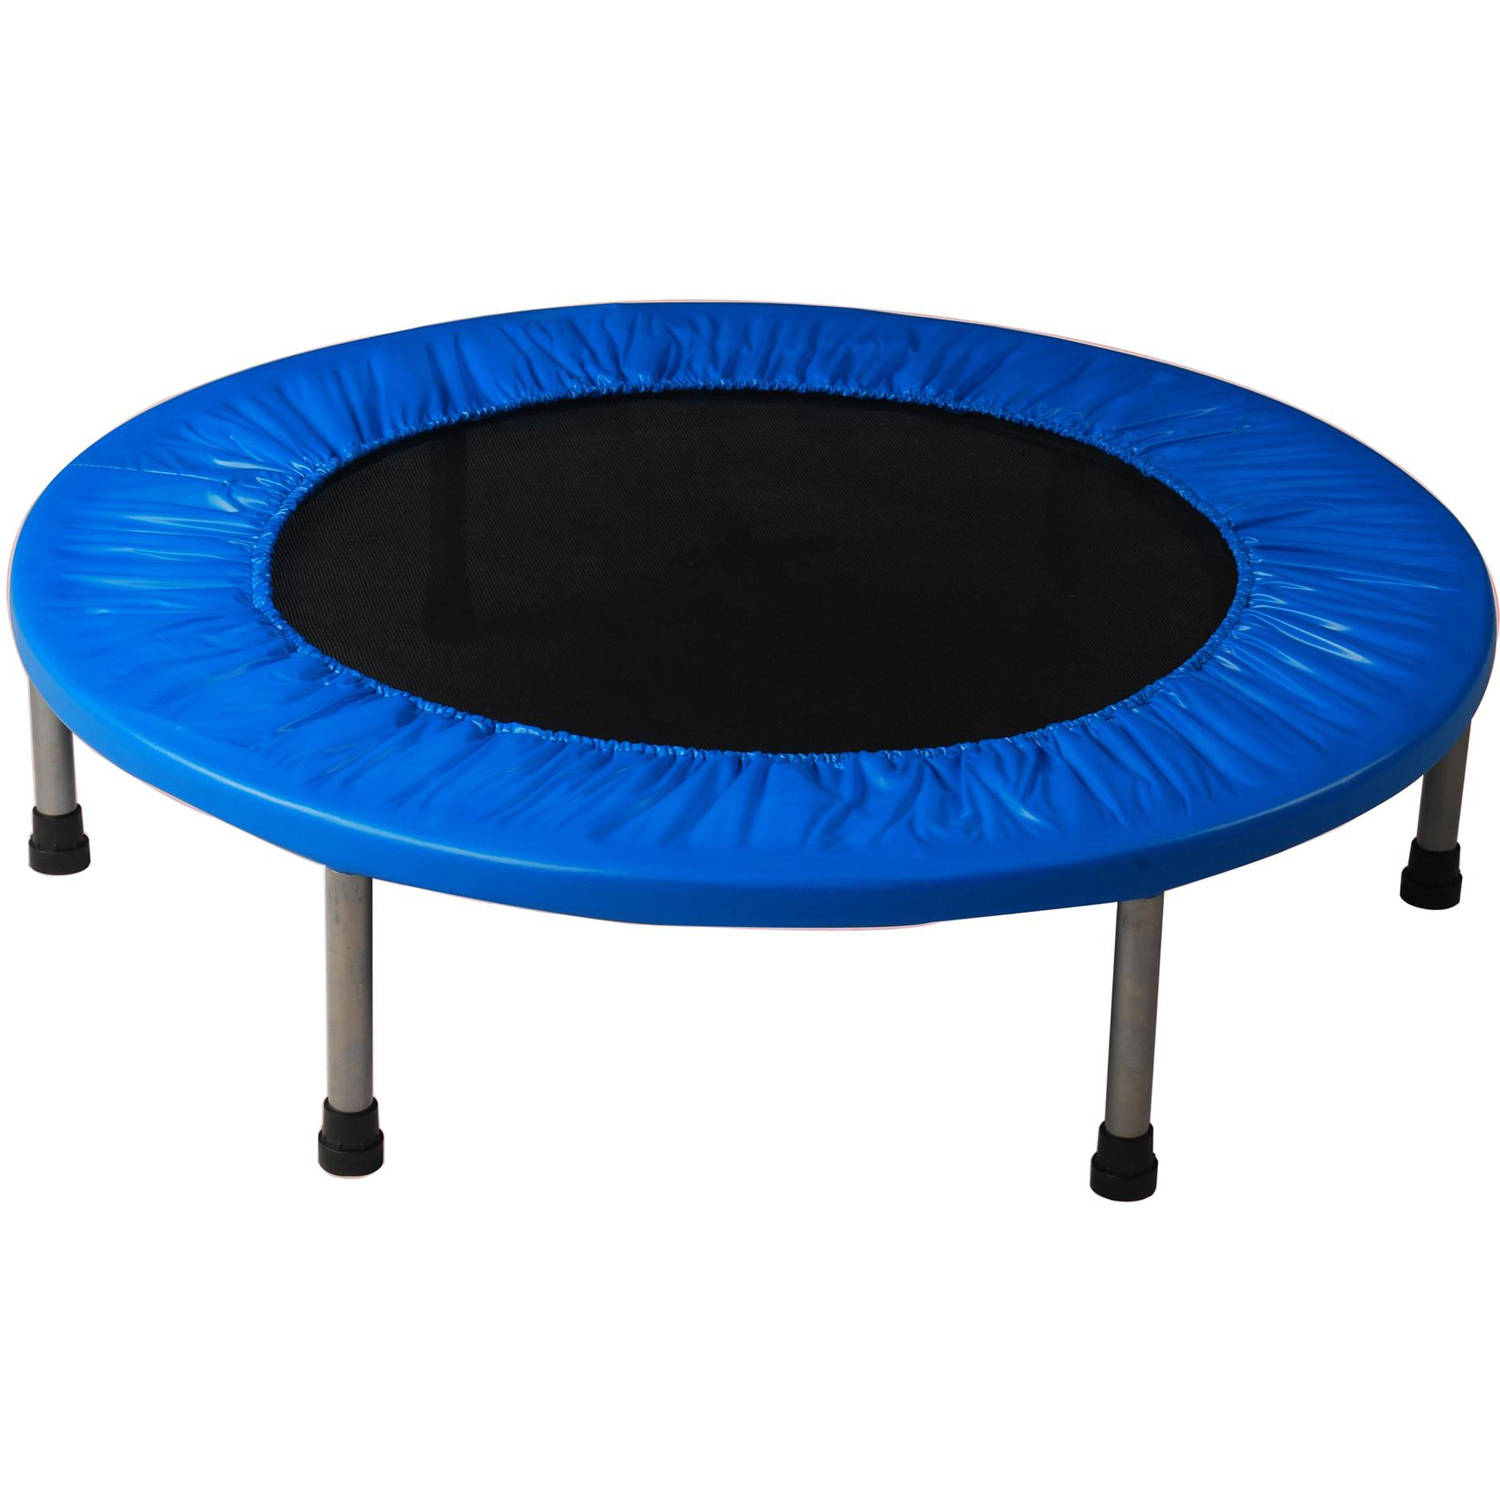 Airzone 48-Inch Fitness Trampoline, Blue - Walmart.com